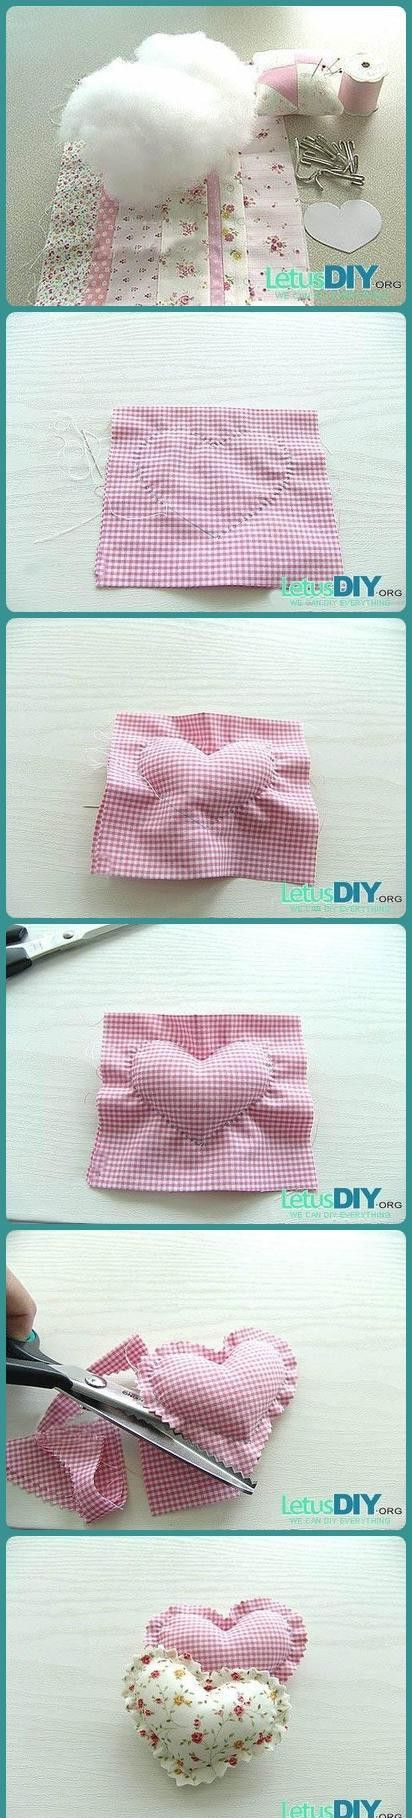 DIY Shabby Hearts - use any cotton or cotton-blend fabric you like.  Sorry no link, just this picture tutorial. Easy enough though.